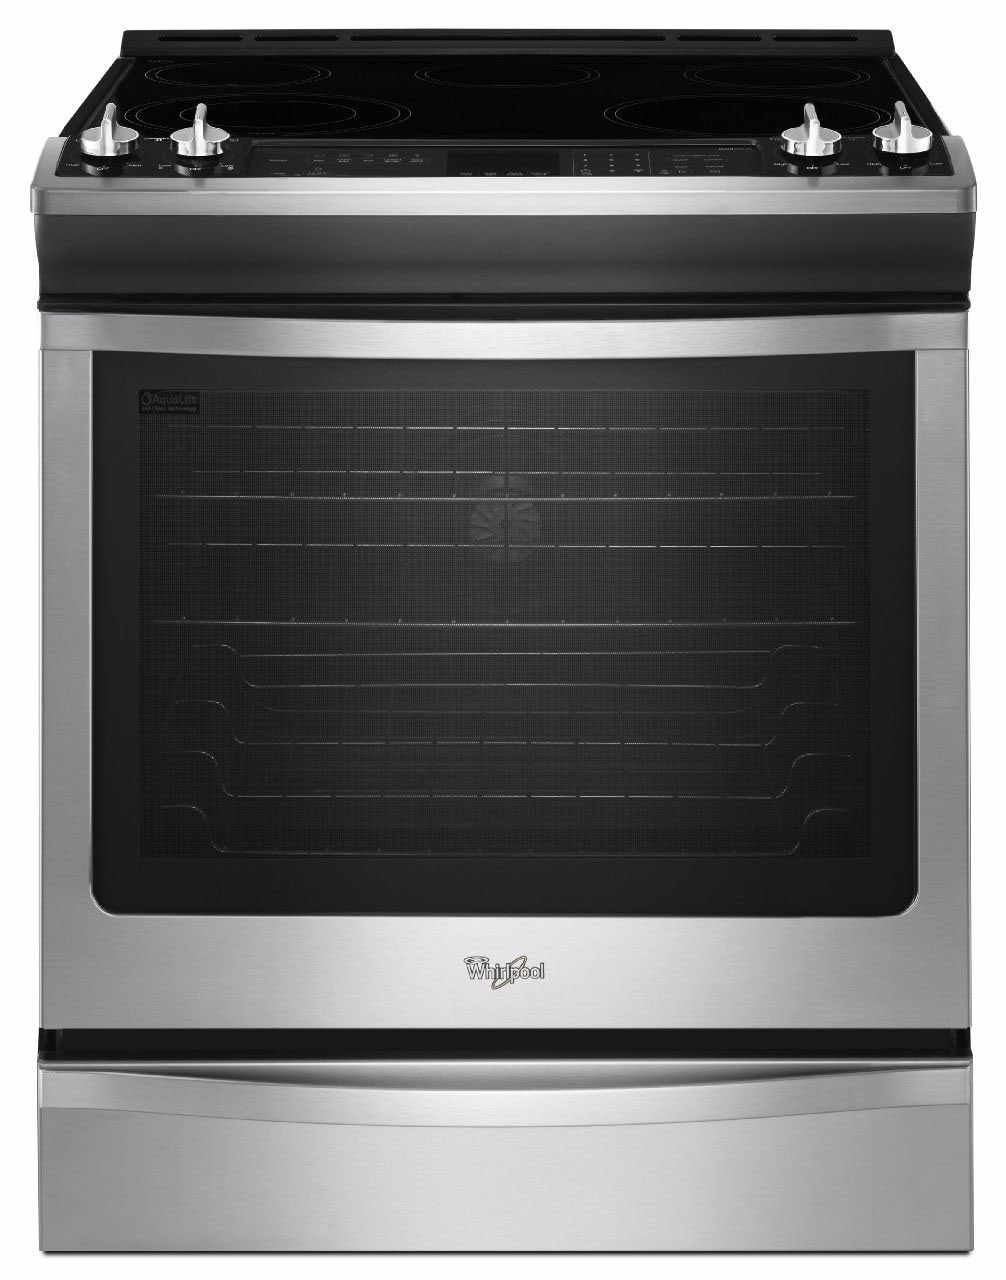 Whirlpool 6.2 Cu. Ft. Electric Range with TimeSavor™ Convection – Stainless Steel